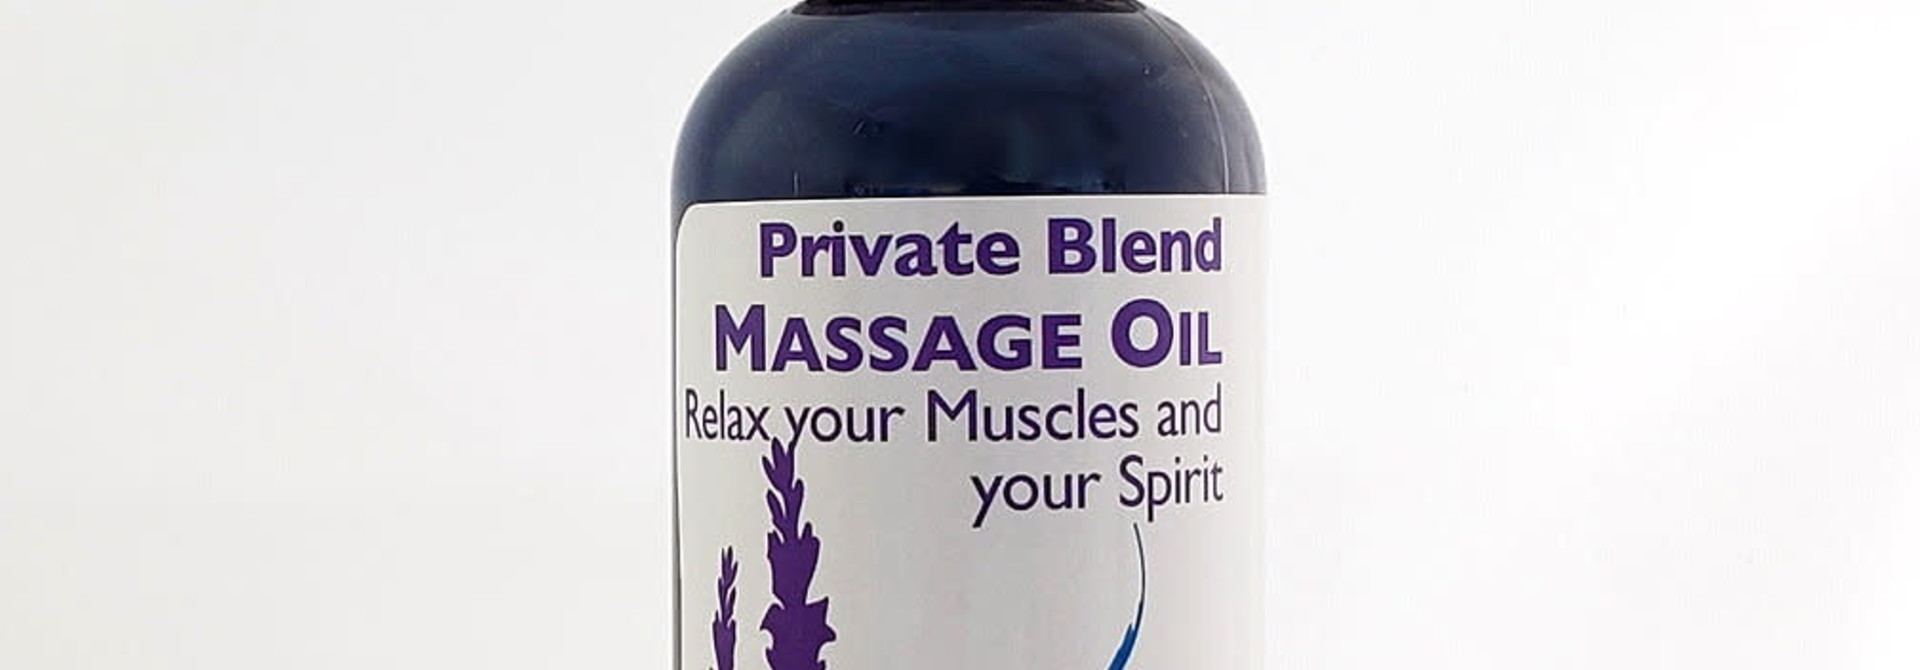 Private Blend Massage Oil - 2oz